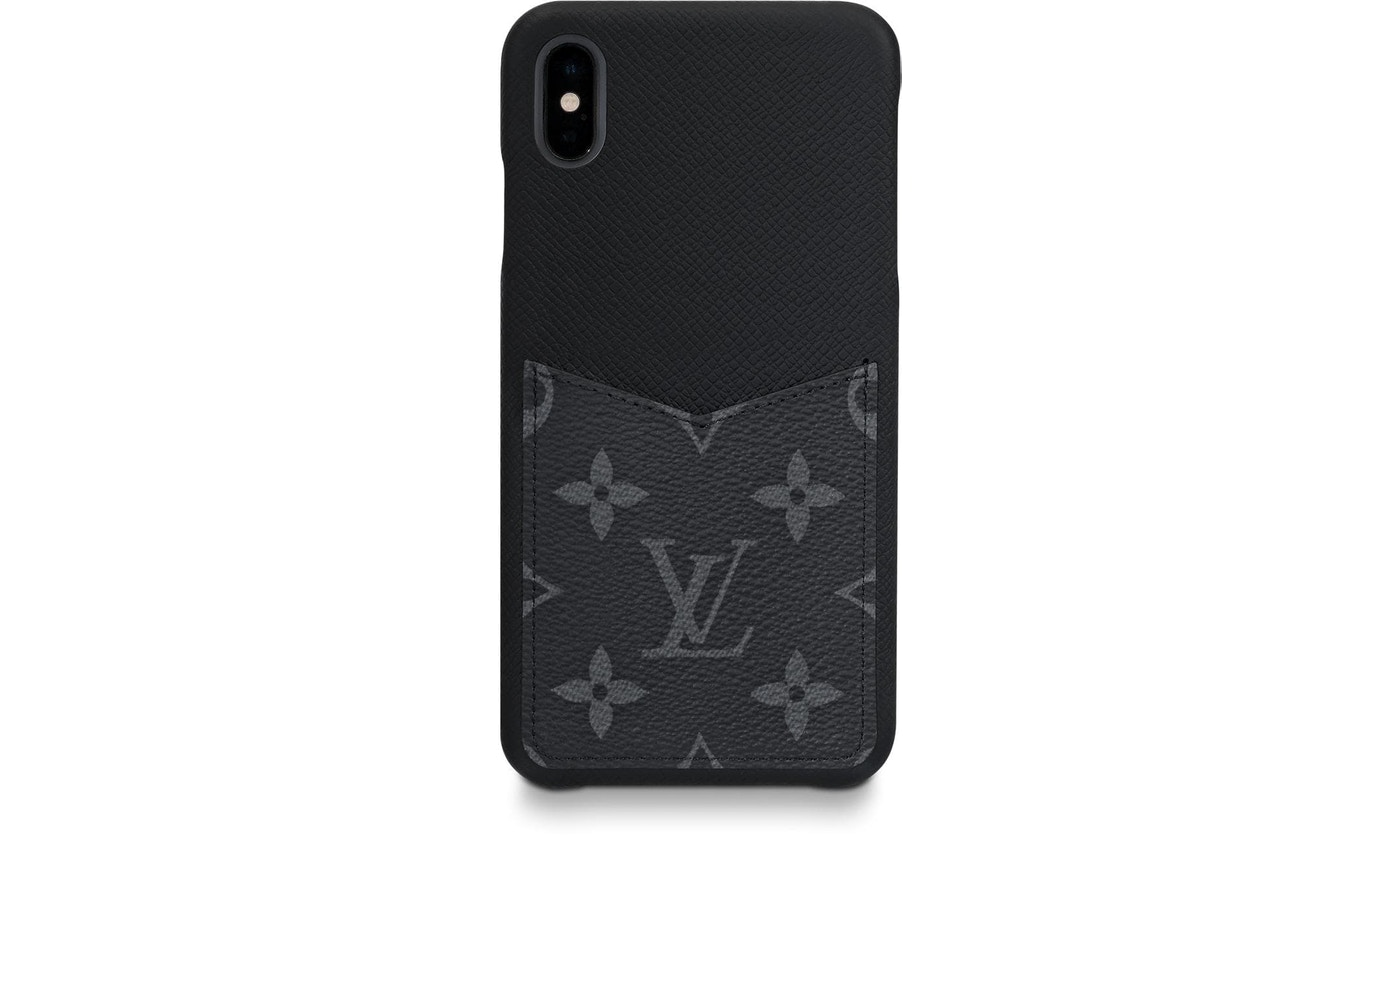 sale retailer 0b7eb 0f04b Louis Vuitton iPhone Case Monogram Eclipse XS MAX Black